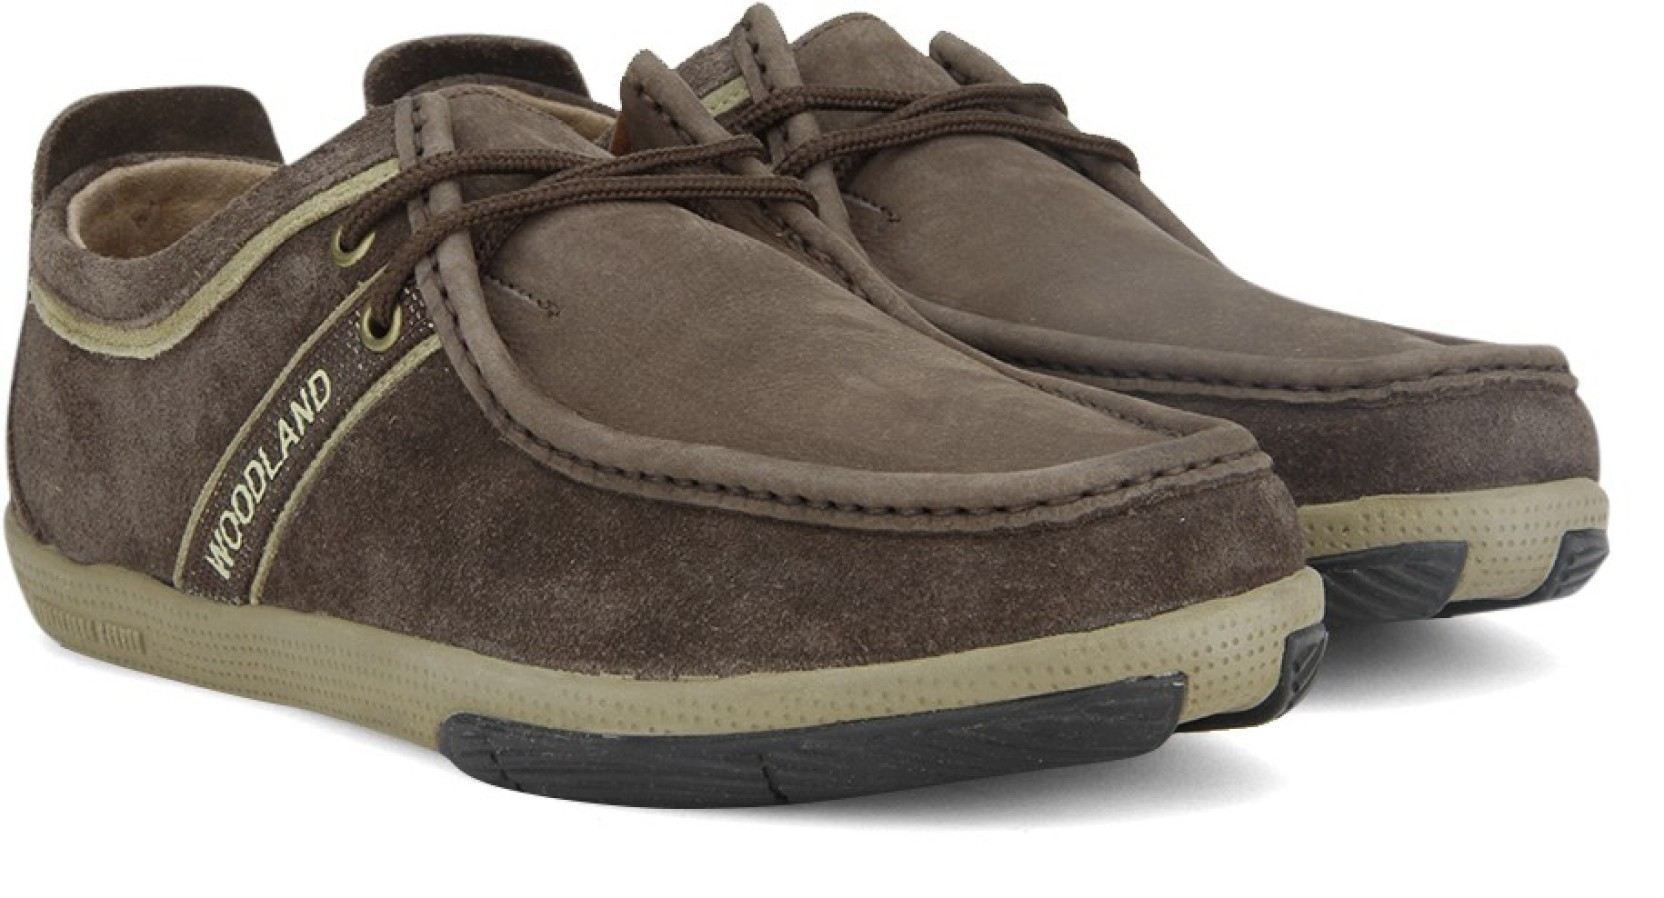 Woodland Leather Outdoor Shoes - Buy DBROWN Color Woodland ...